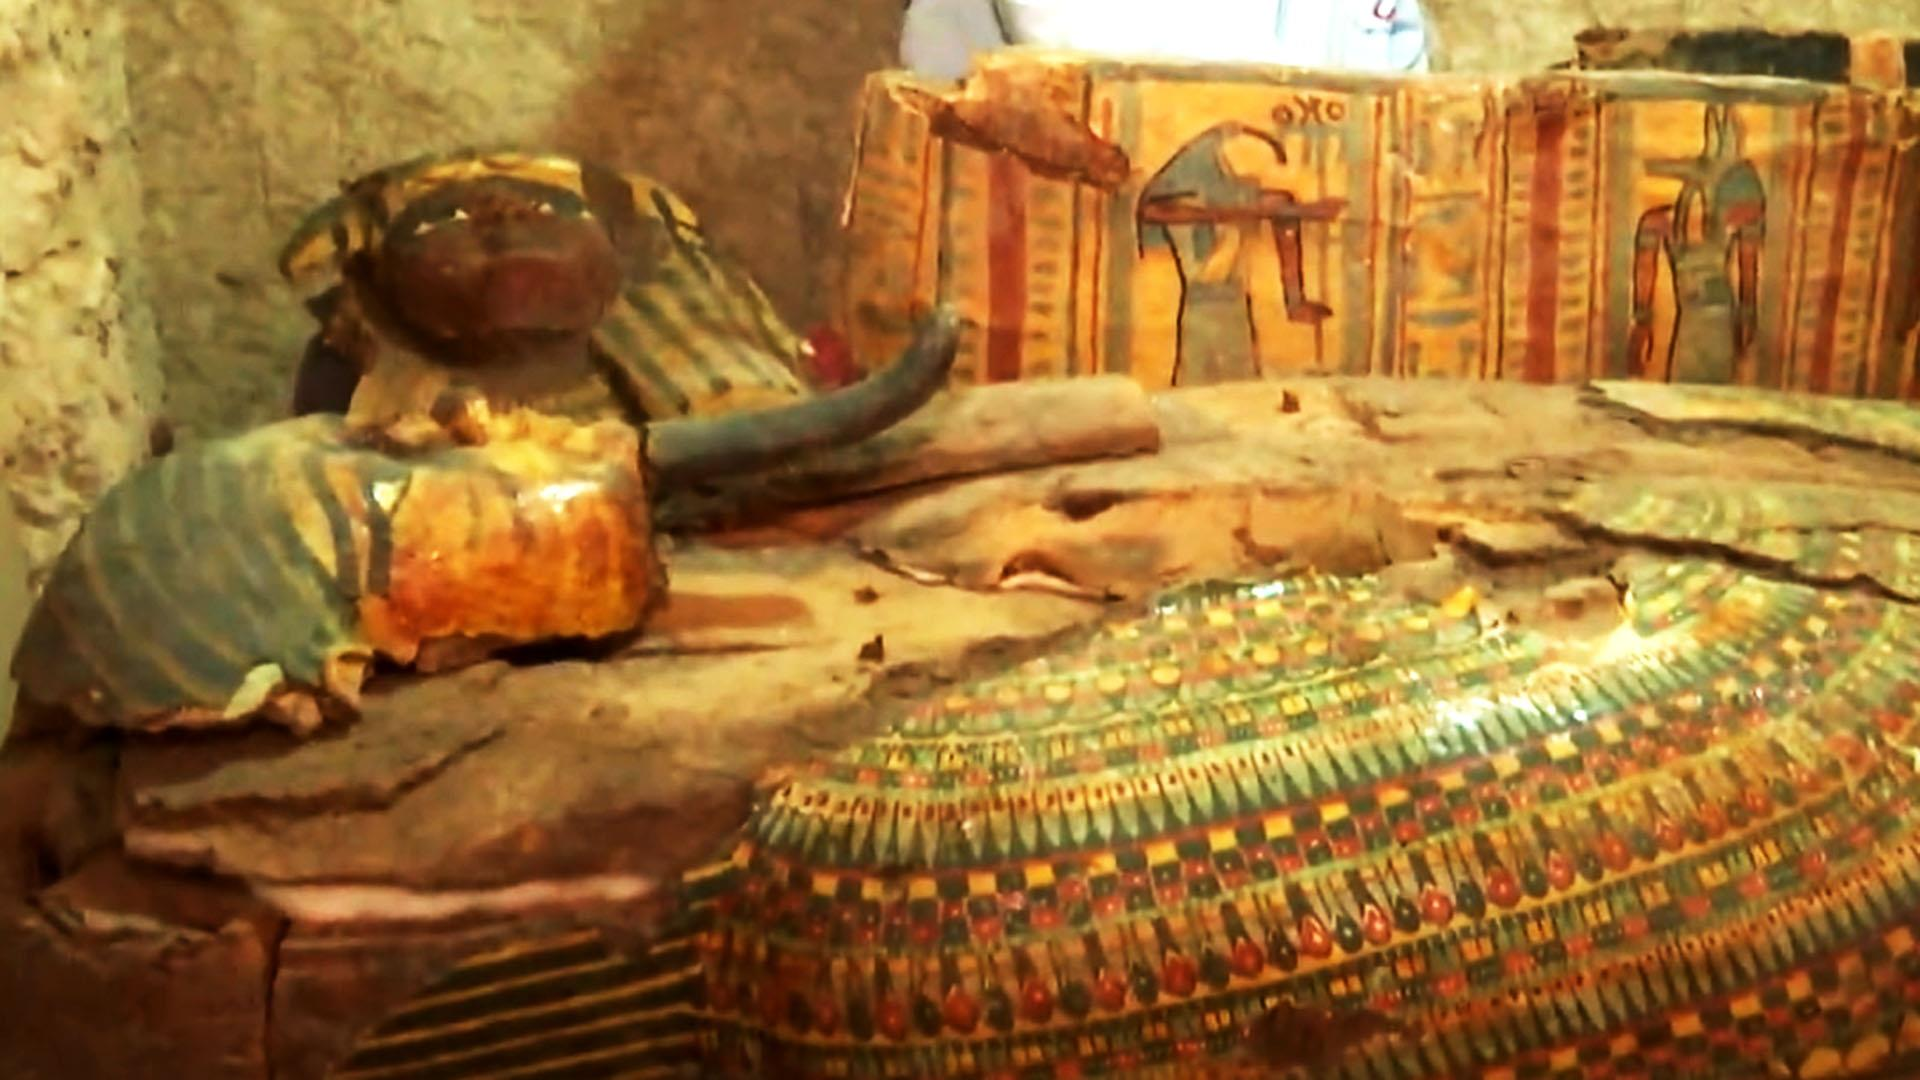 3,500 year old Egyptian tomb unearthed near Luxor - NBC News